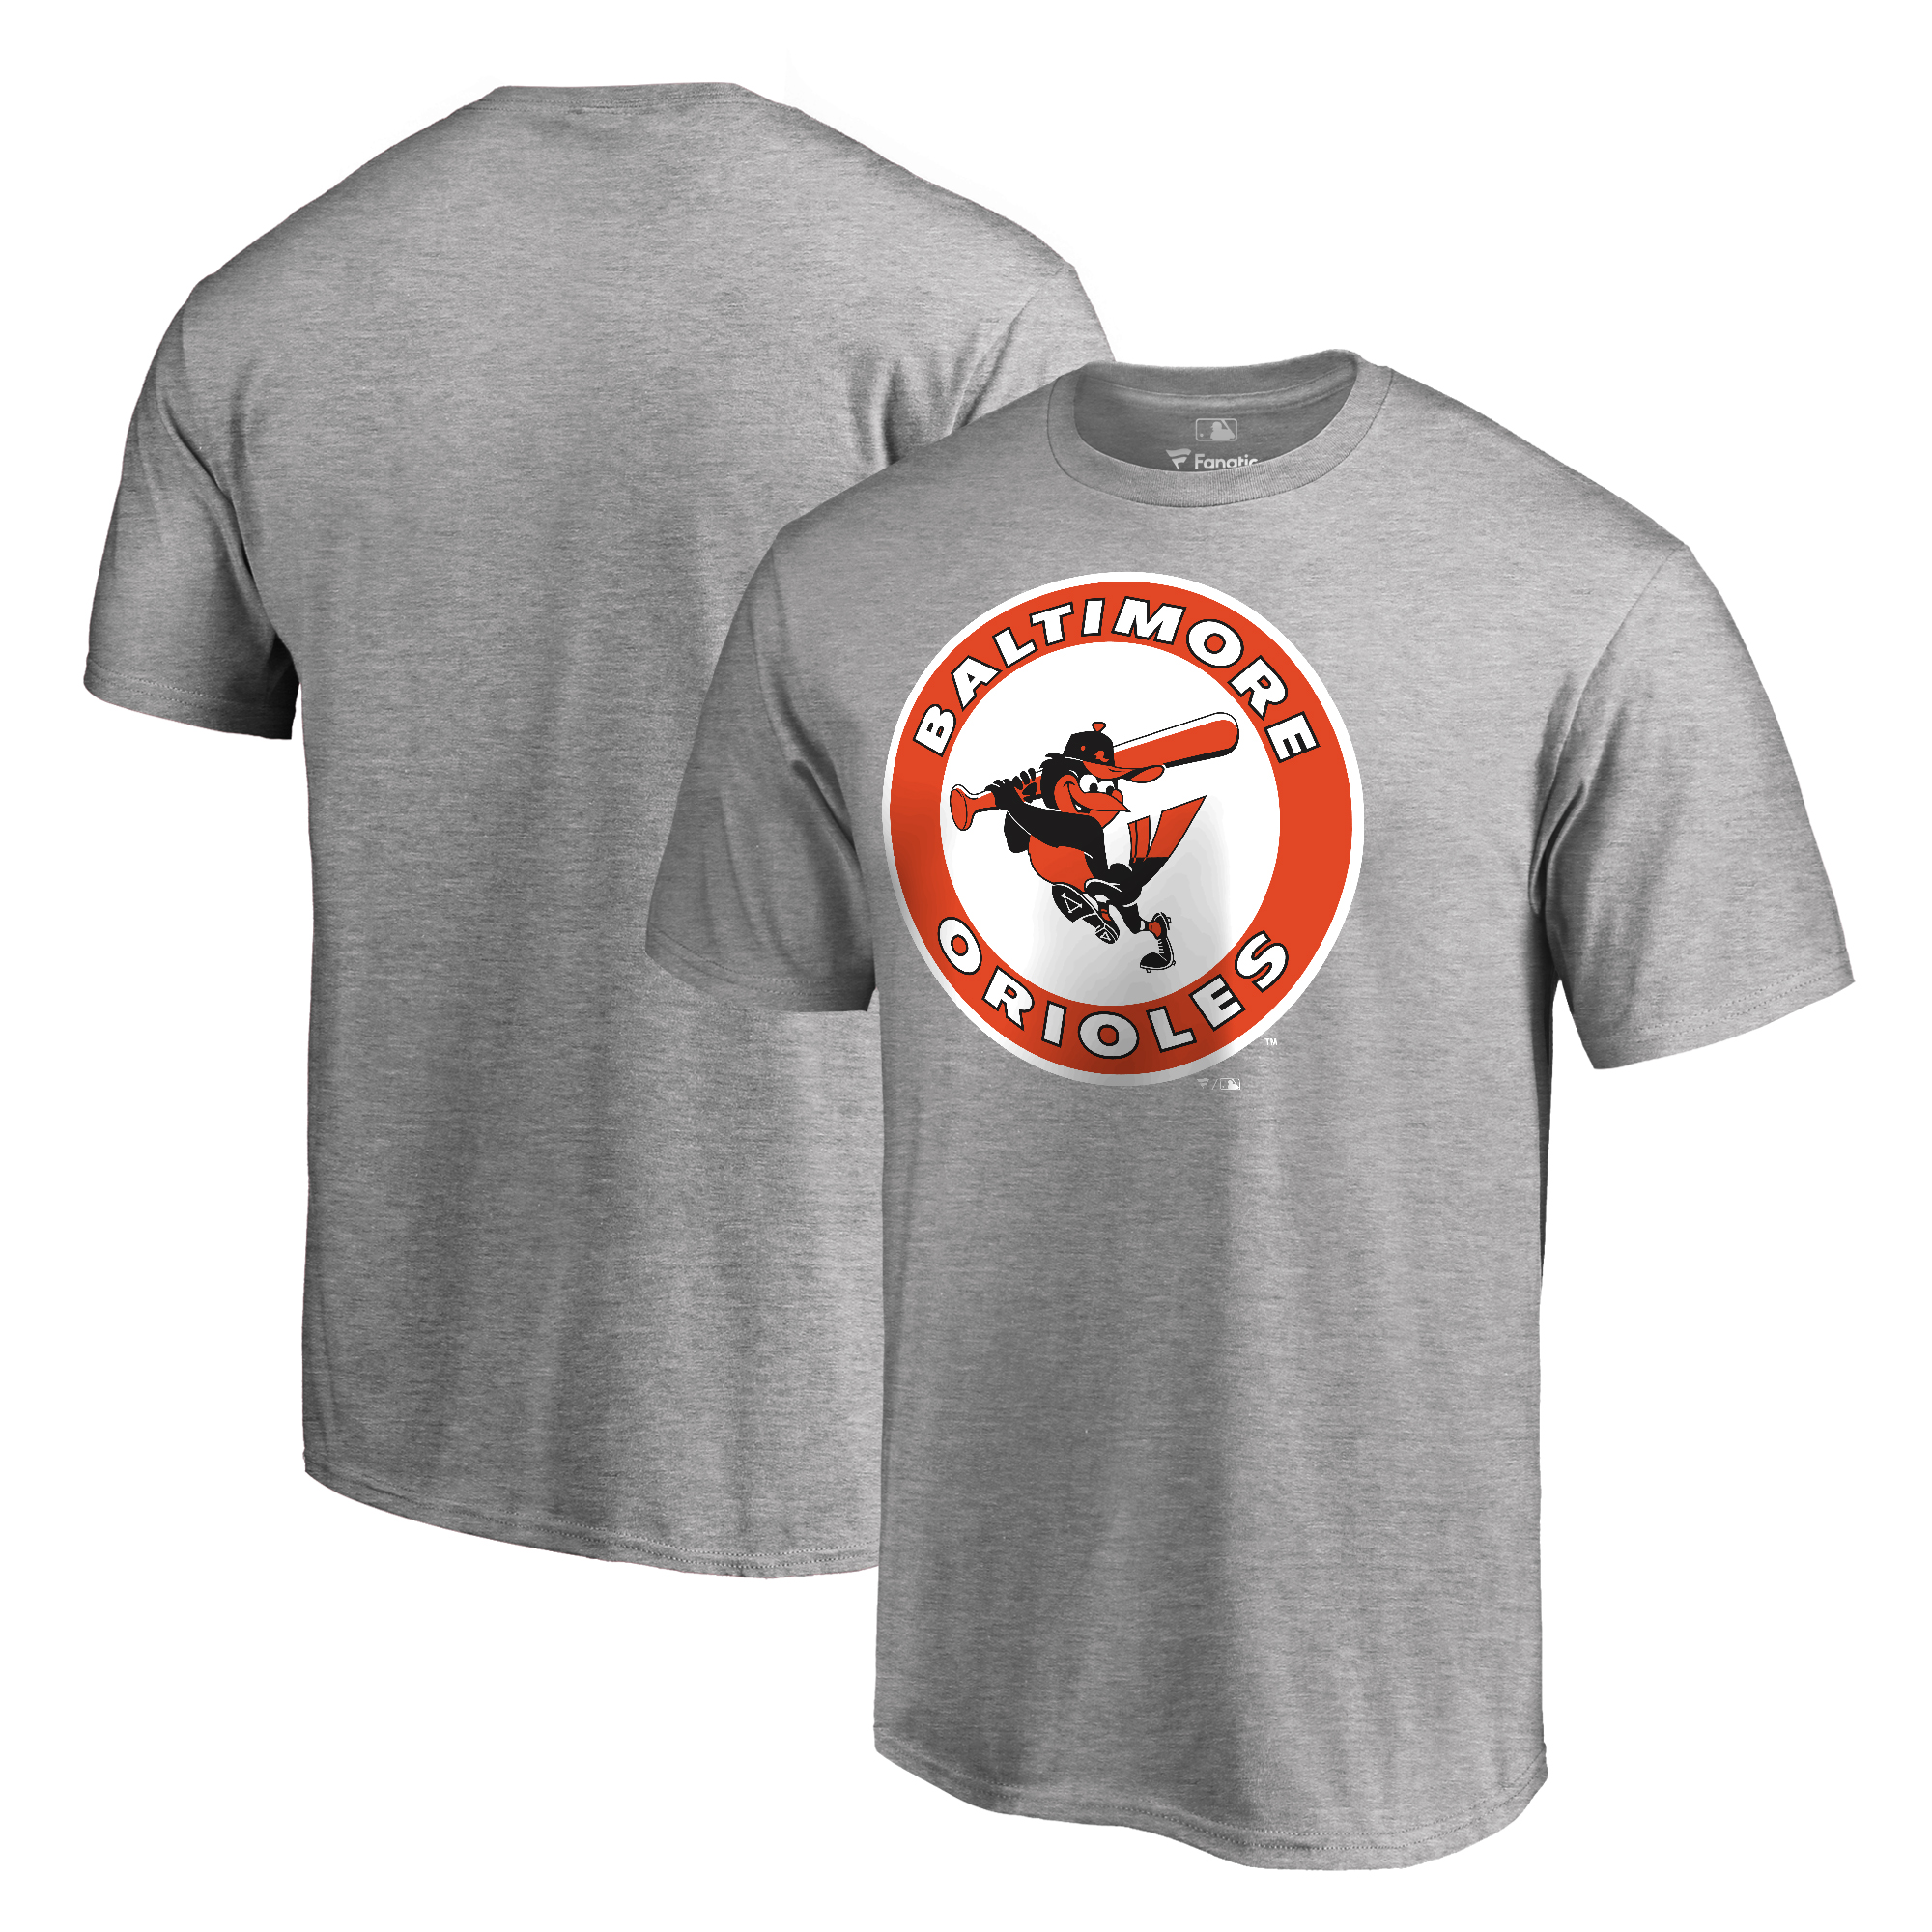 Baltimore Orioles Fanatics Branded Cooperstown Collection Forbes T-Shirt - Ash